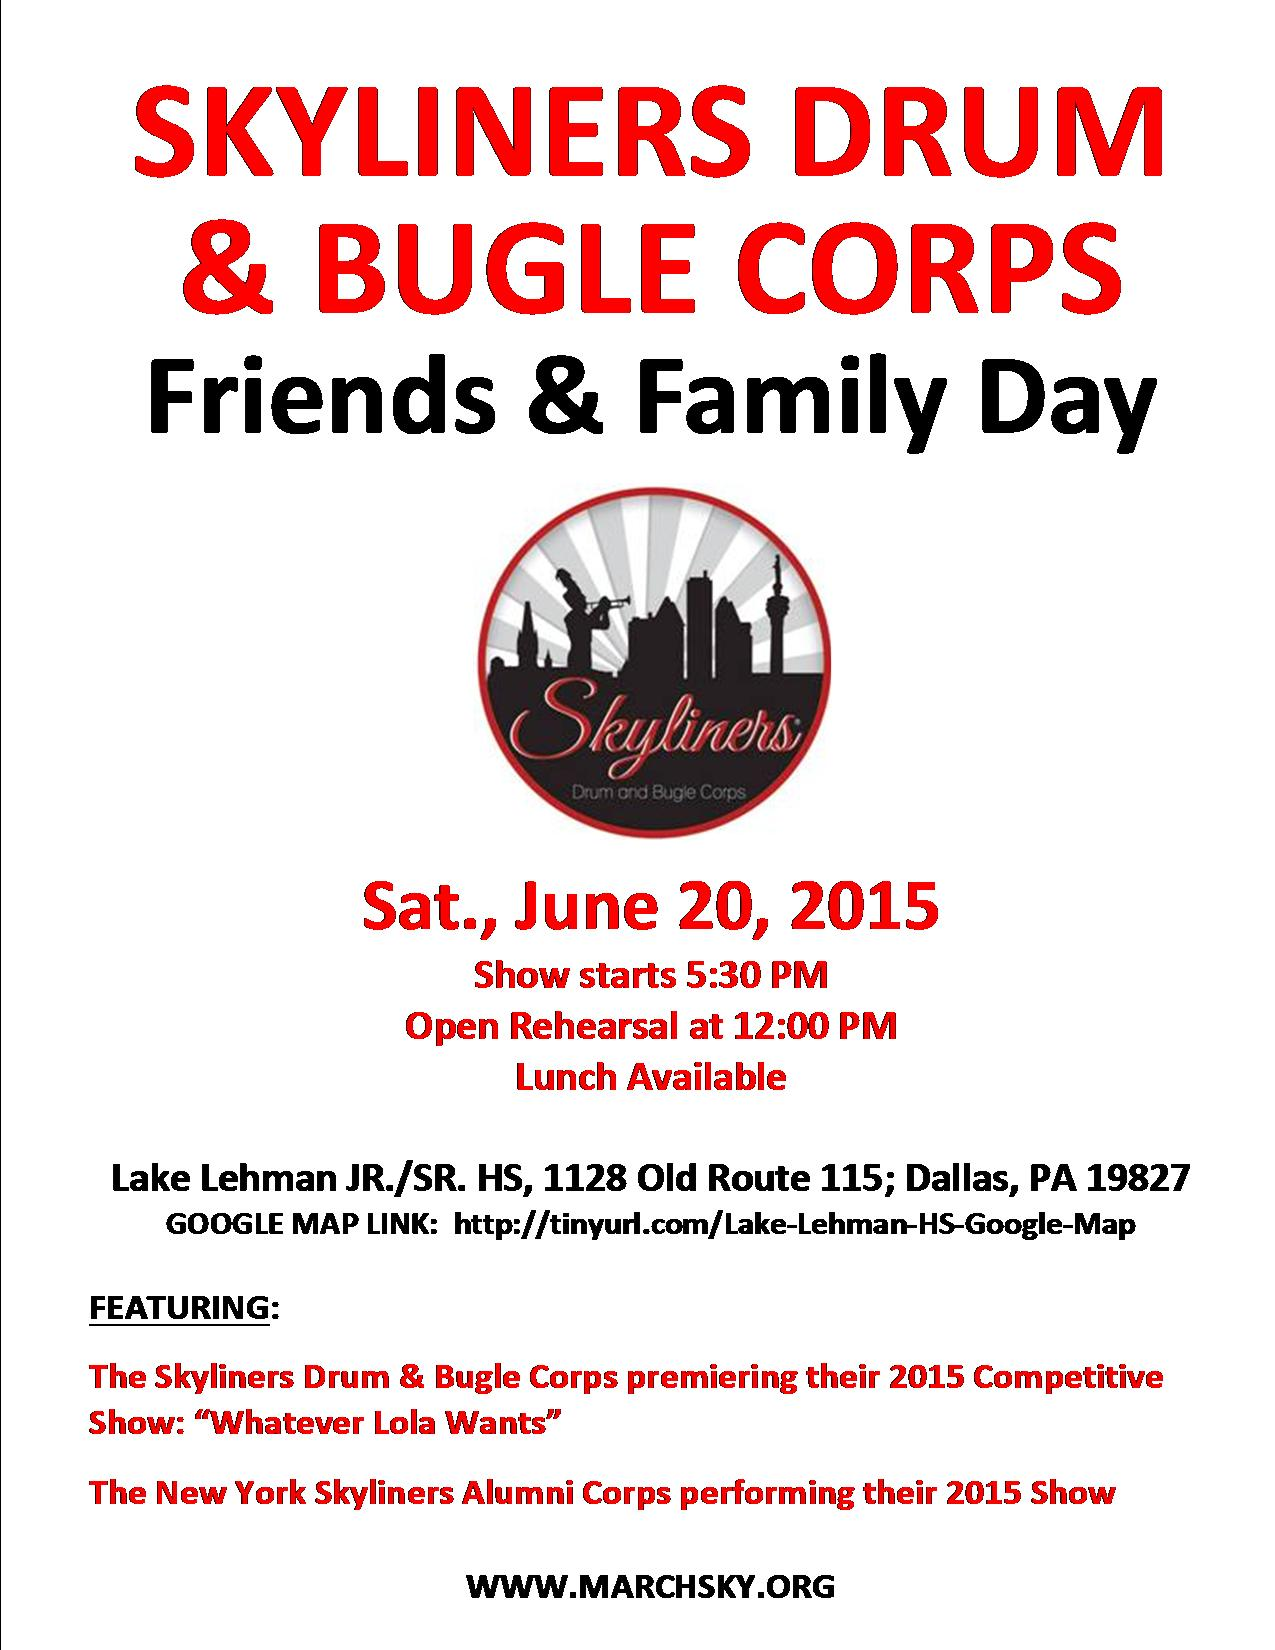 Skyliners_Family_and_Friends_Day_6-20-15